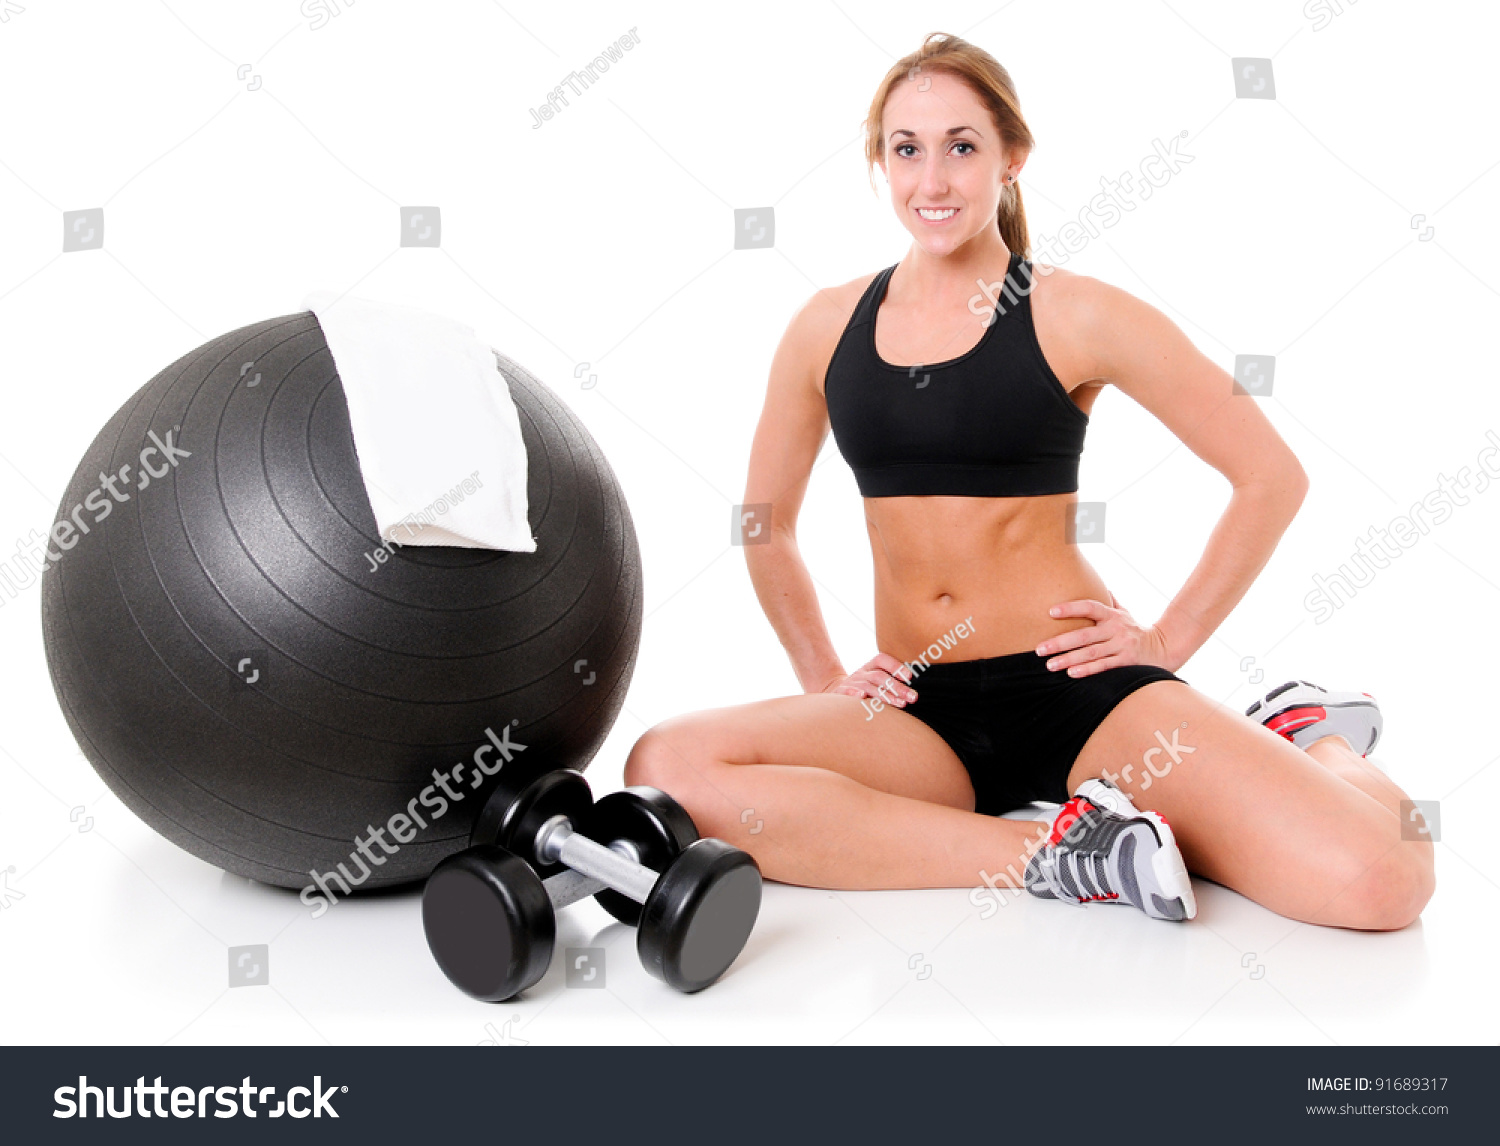 Health And Fitness Woman In Gym Outfit With A Pilates Ball ...